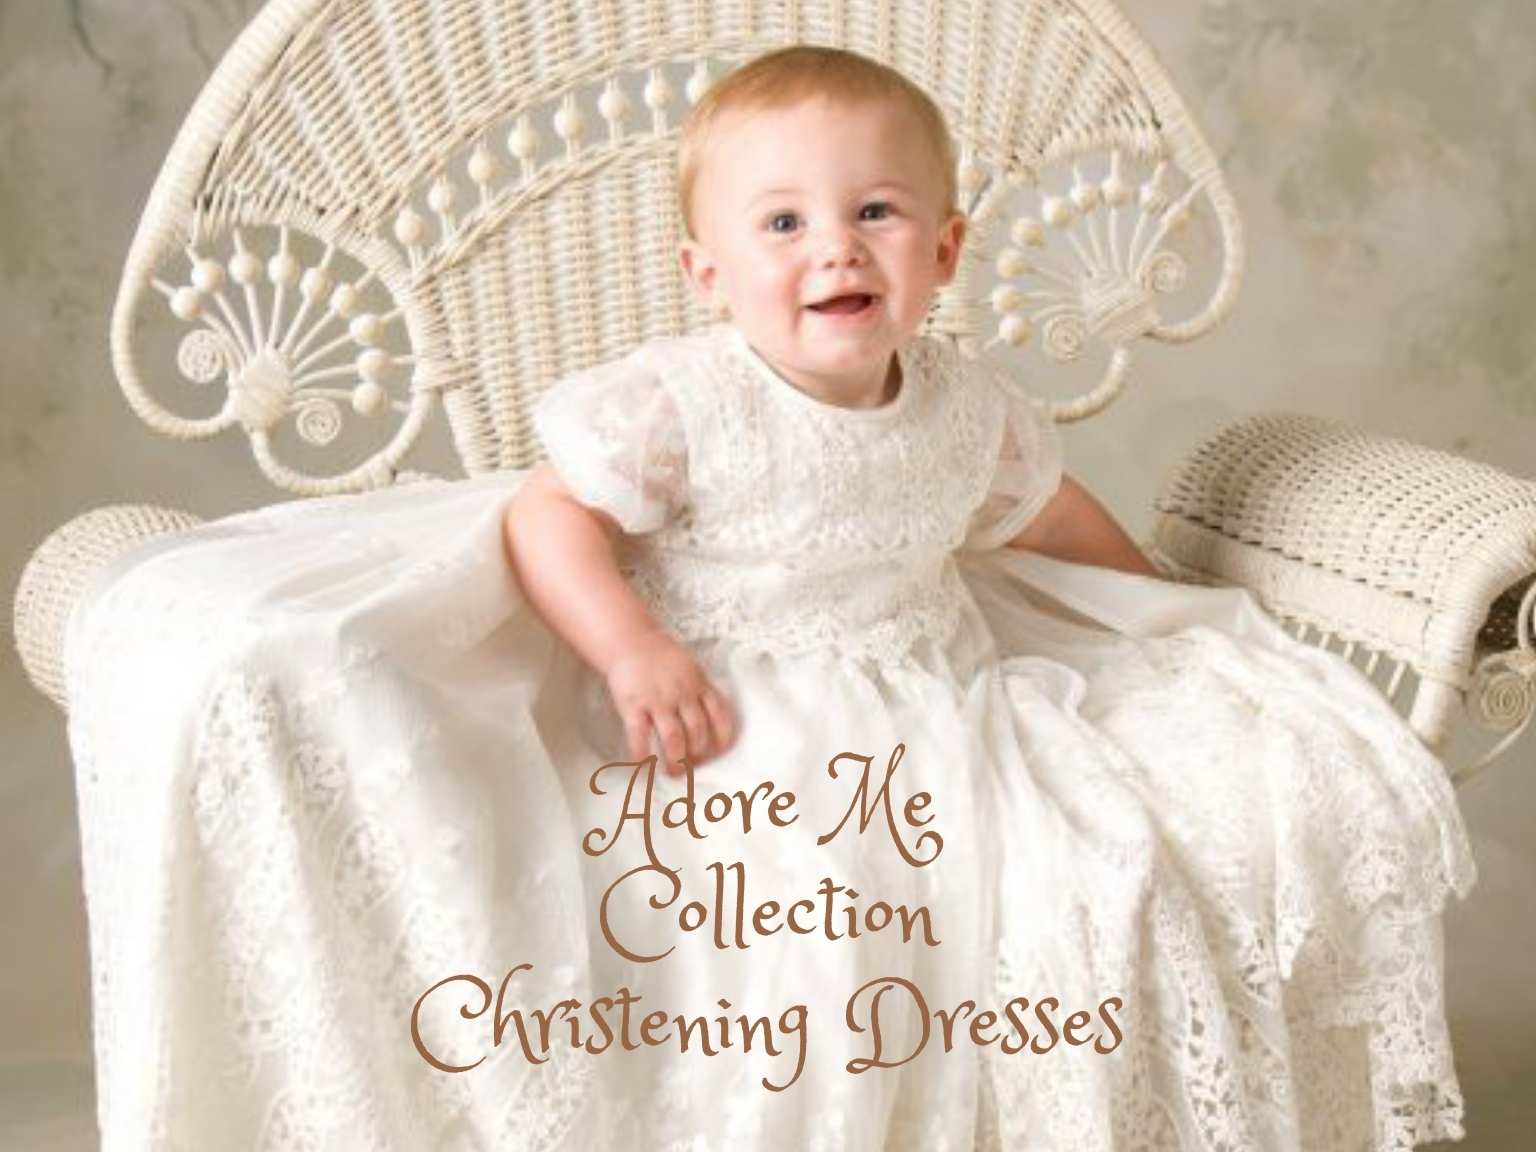 adore-me-collection-communion-dresses-5-.jpg